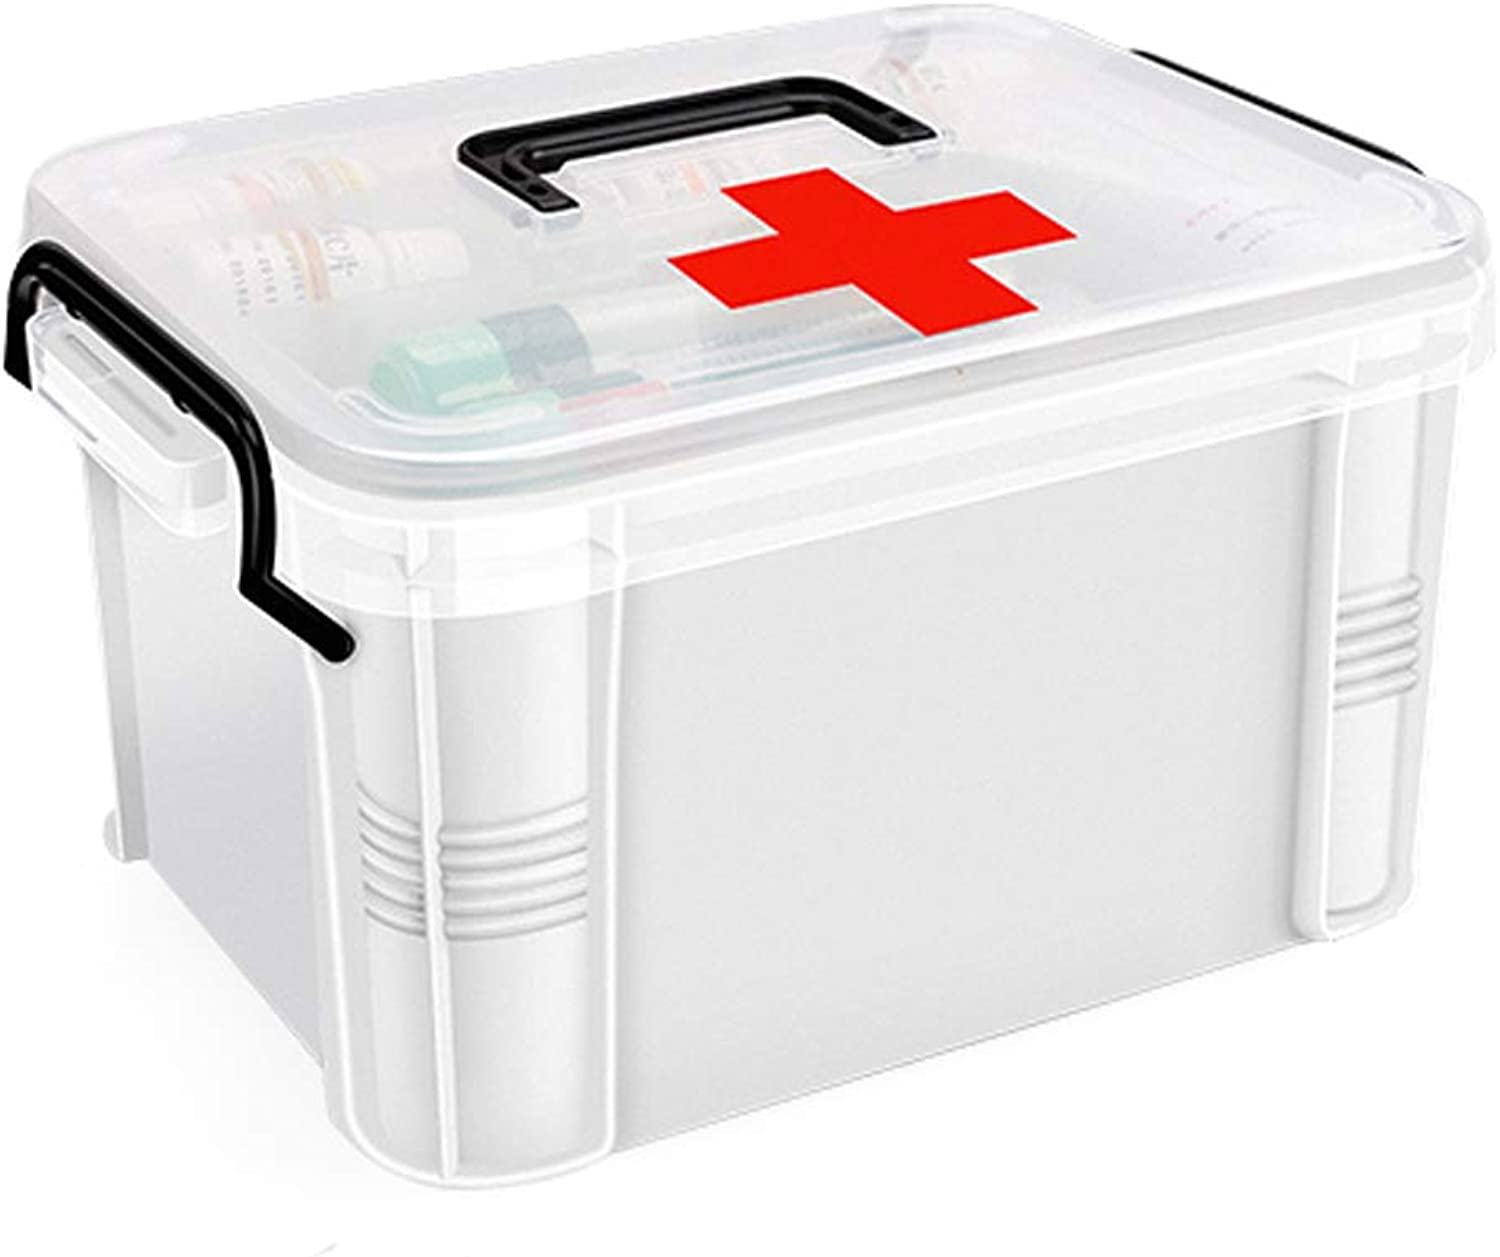 YangXu Medical Box-polyethylene Material, Light and Easy to take Moisture and dustproof, Thick and Durable Easy to Clean Multi-Function Double-Layer Large Capacity, Household Double-Layer Medical Box